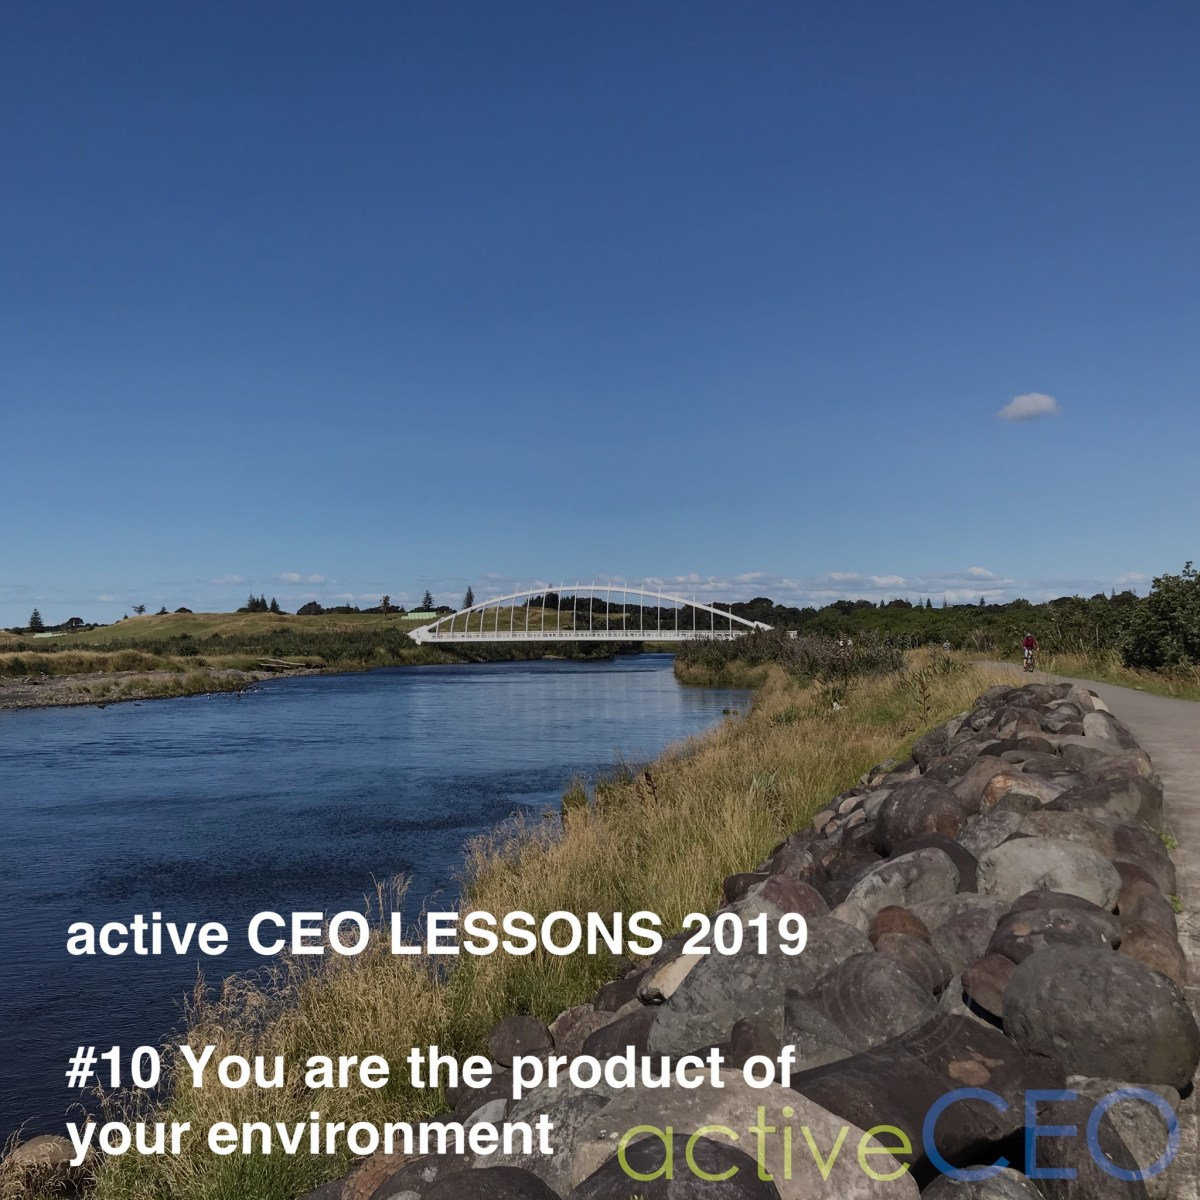 active CEO Lessons 2019 #10 You are the product of your environment